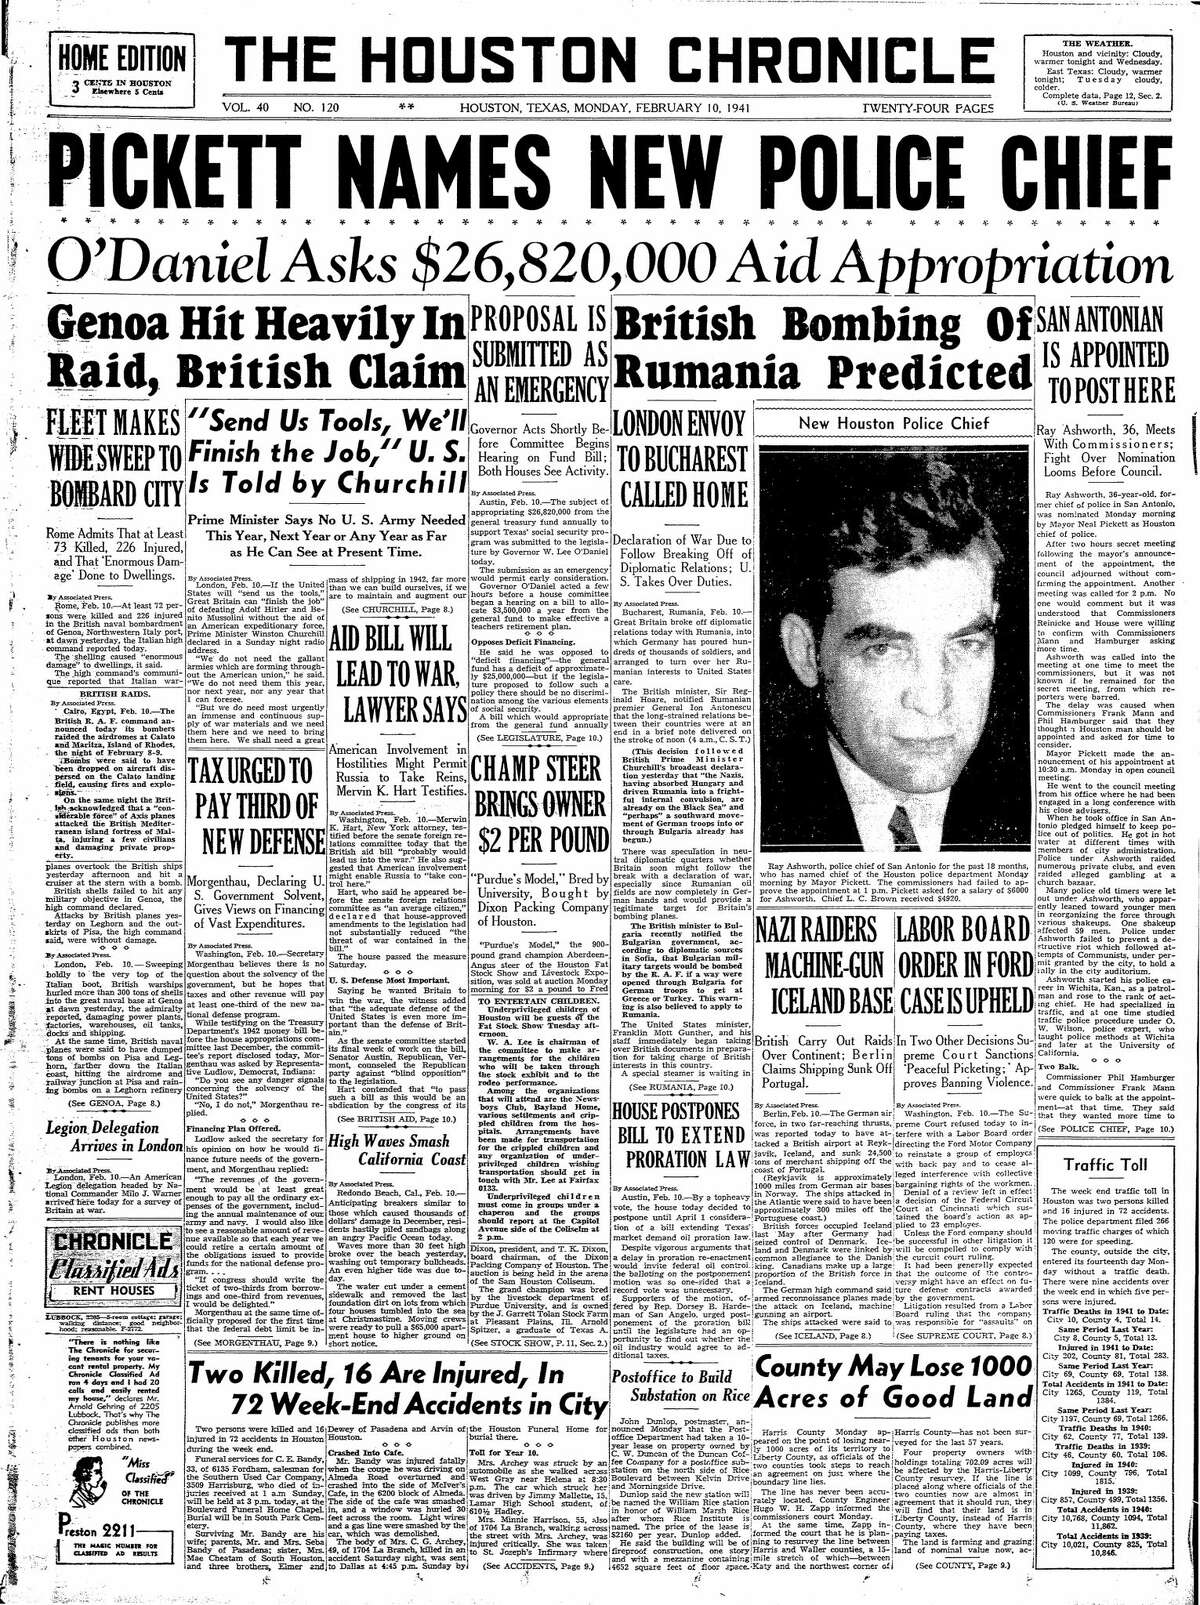 Houston Chronicle front page from Feb. 10, 1941.